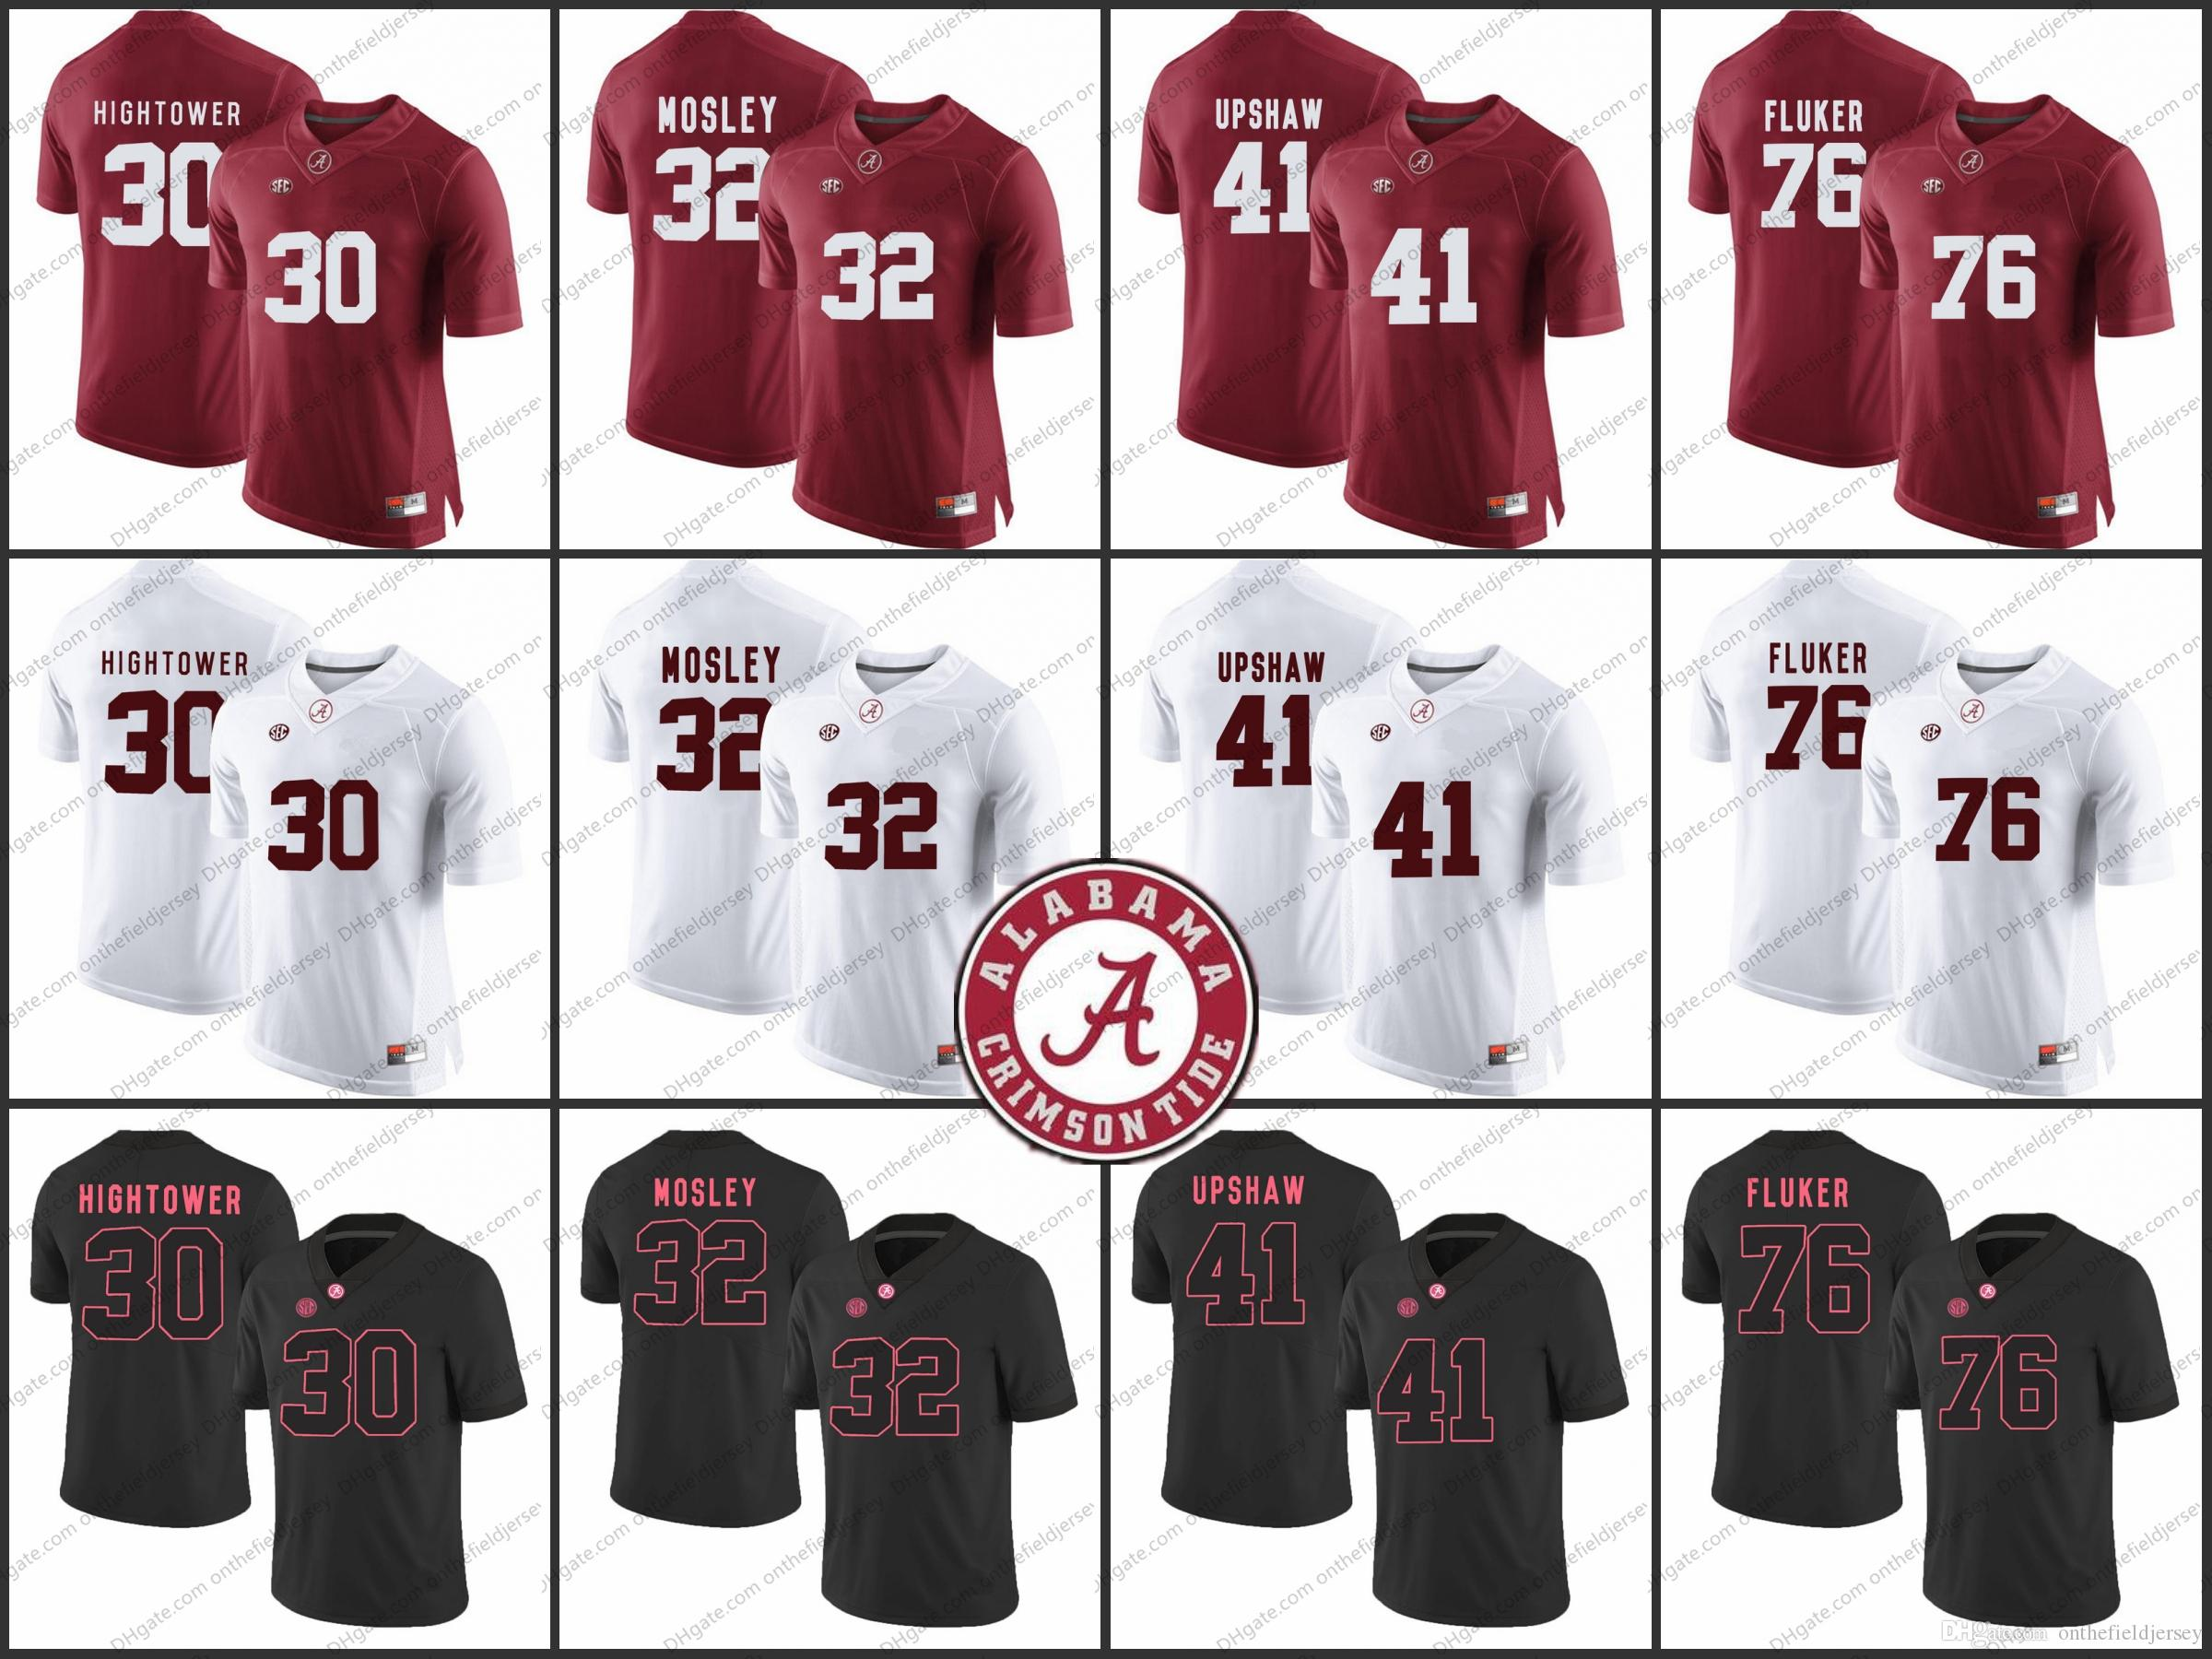 449528efd nike alabama crimson tide 4 game football jersey white; alabama crimson  tide ncaa 30 donta hightower 32 cj mosley 41 courtney upshaw 76 dj fluker